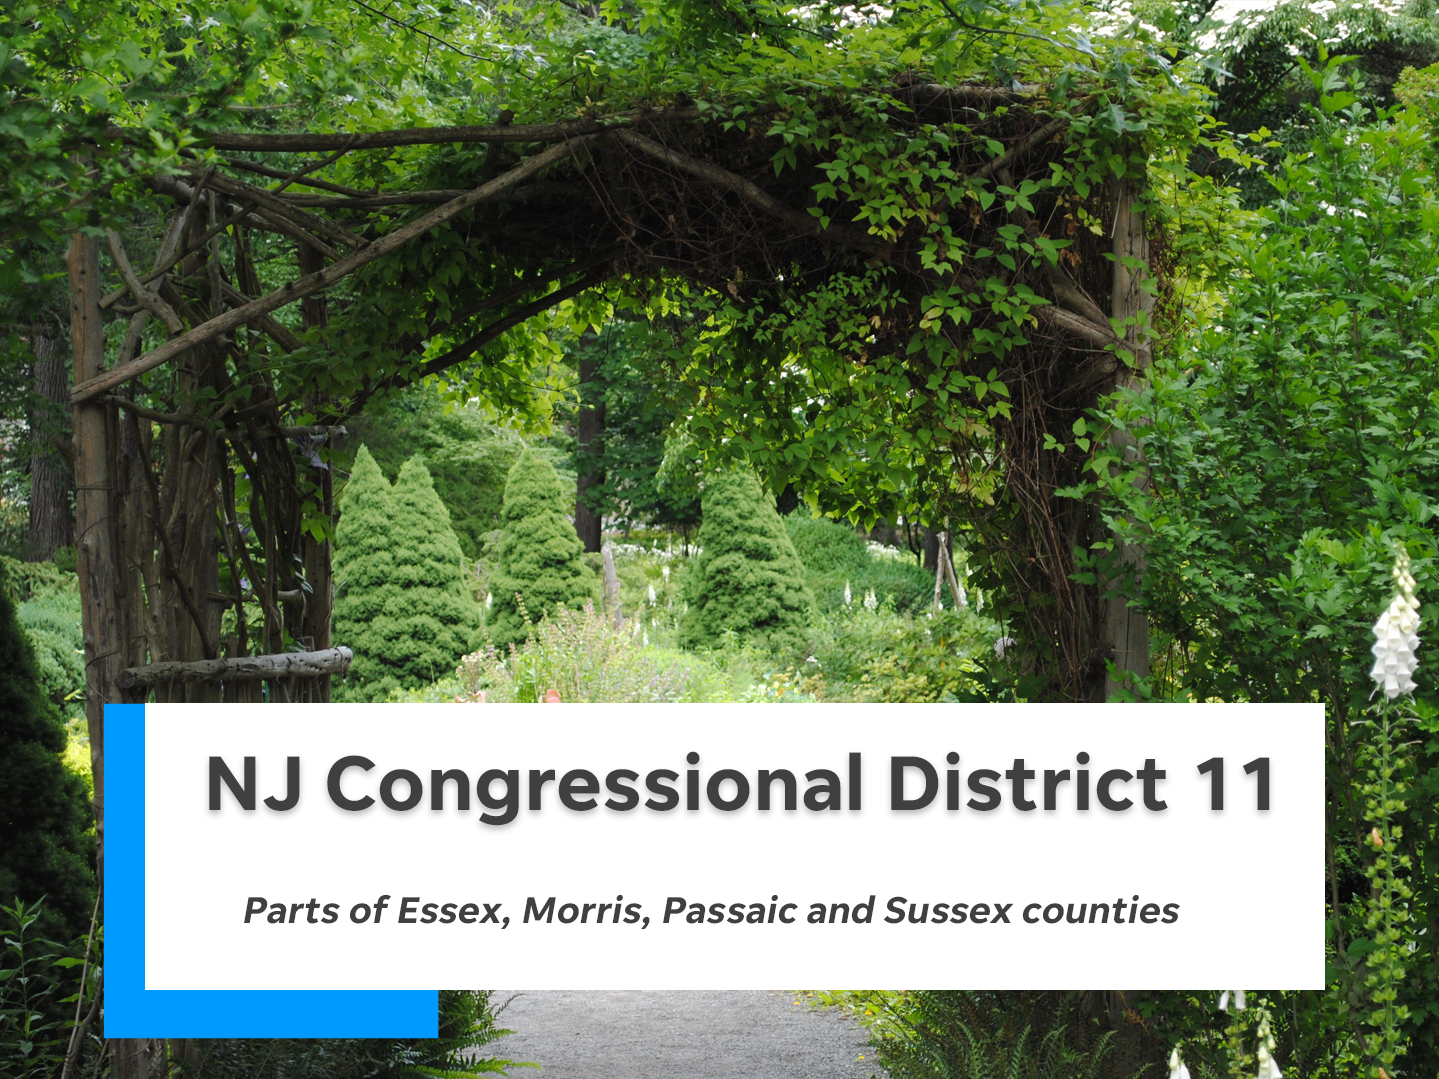 NJ's 11th congressional district is comprised of parts of Essex, Morris, Passaic and Sussex counties.